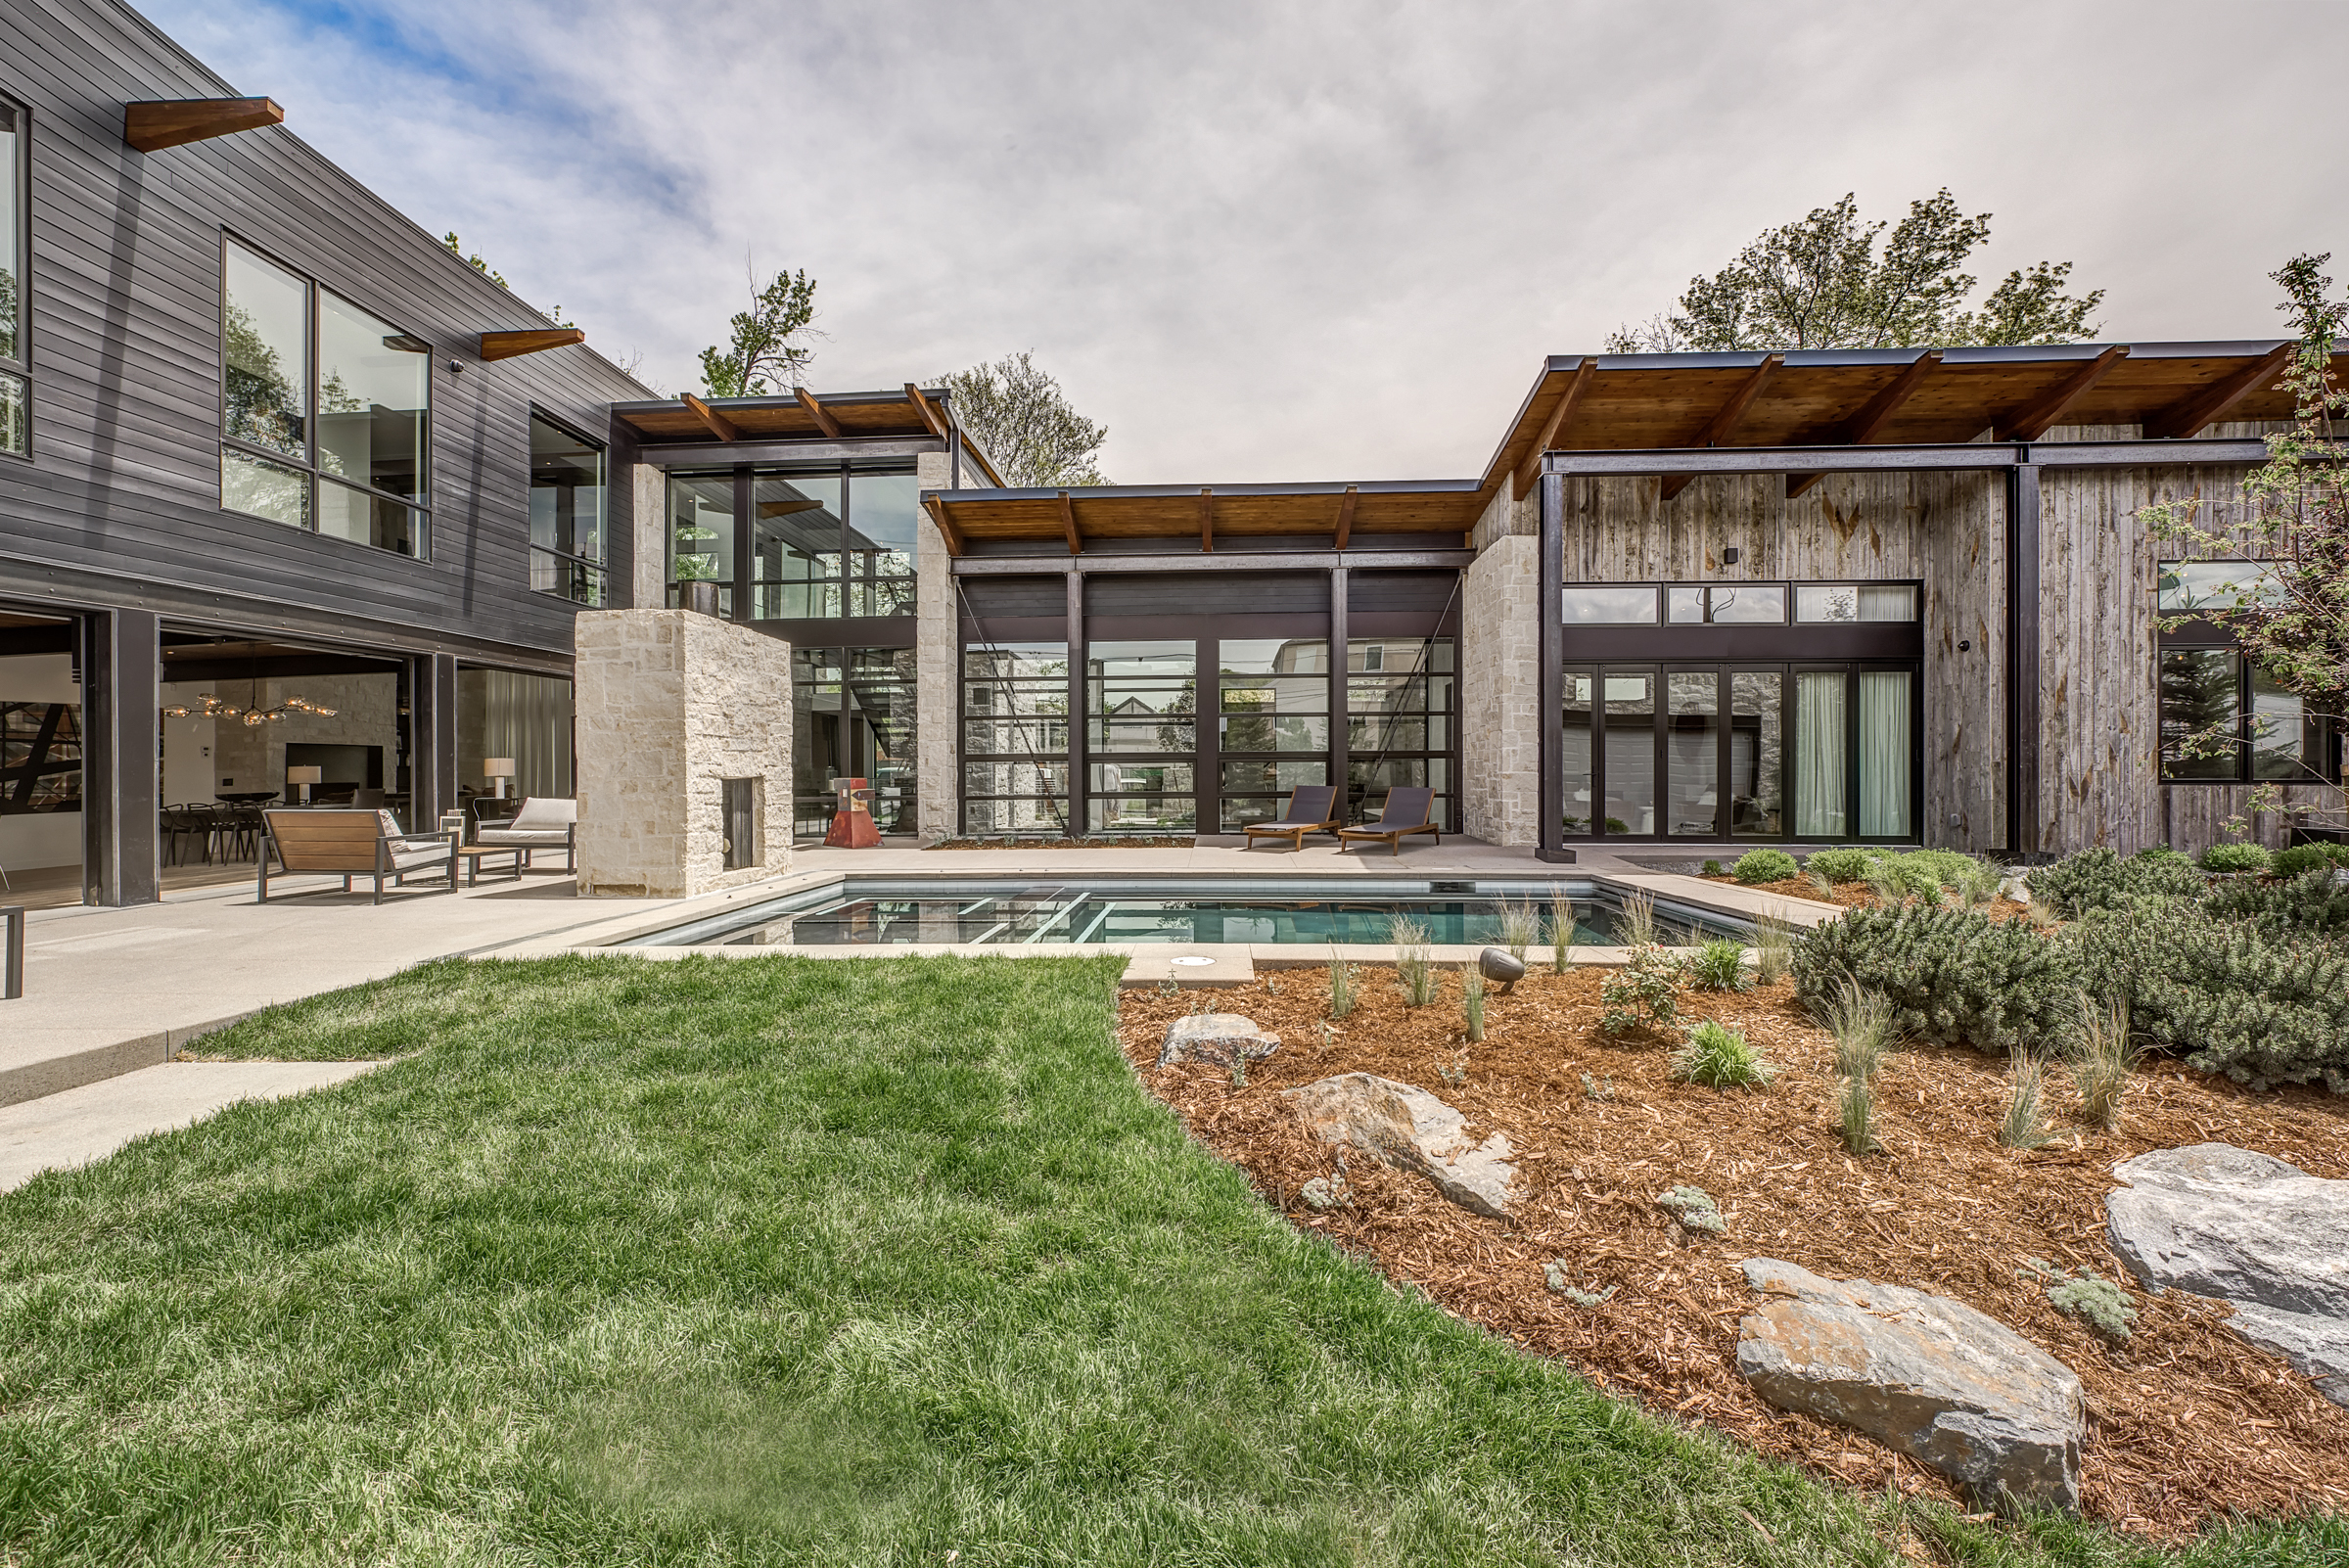 333 Milwaukee Street listed by LIV Sotheby's International Realty broker, Jeff Hendley, for $7,000,000.